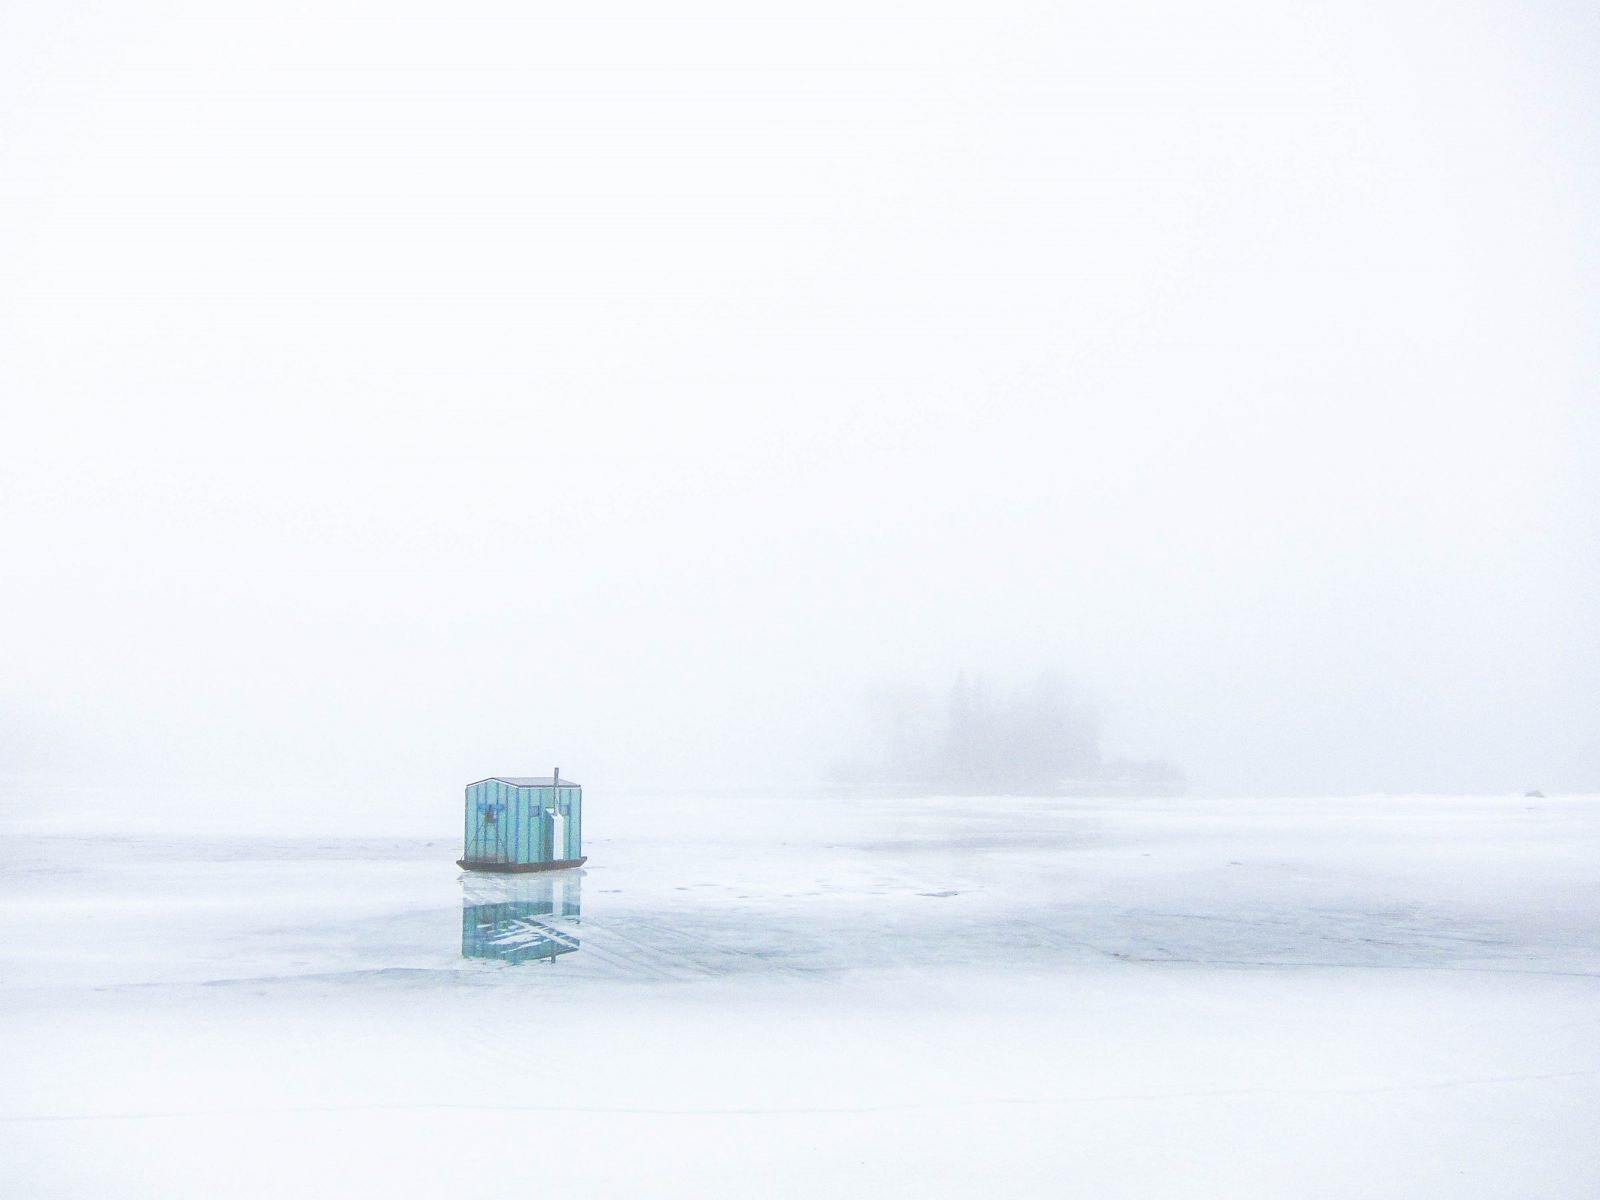 Ice Fishing on a Foggy Morning